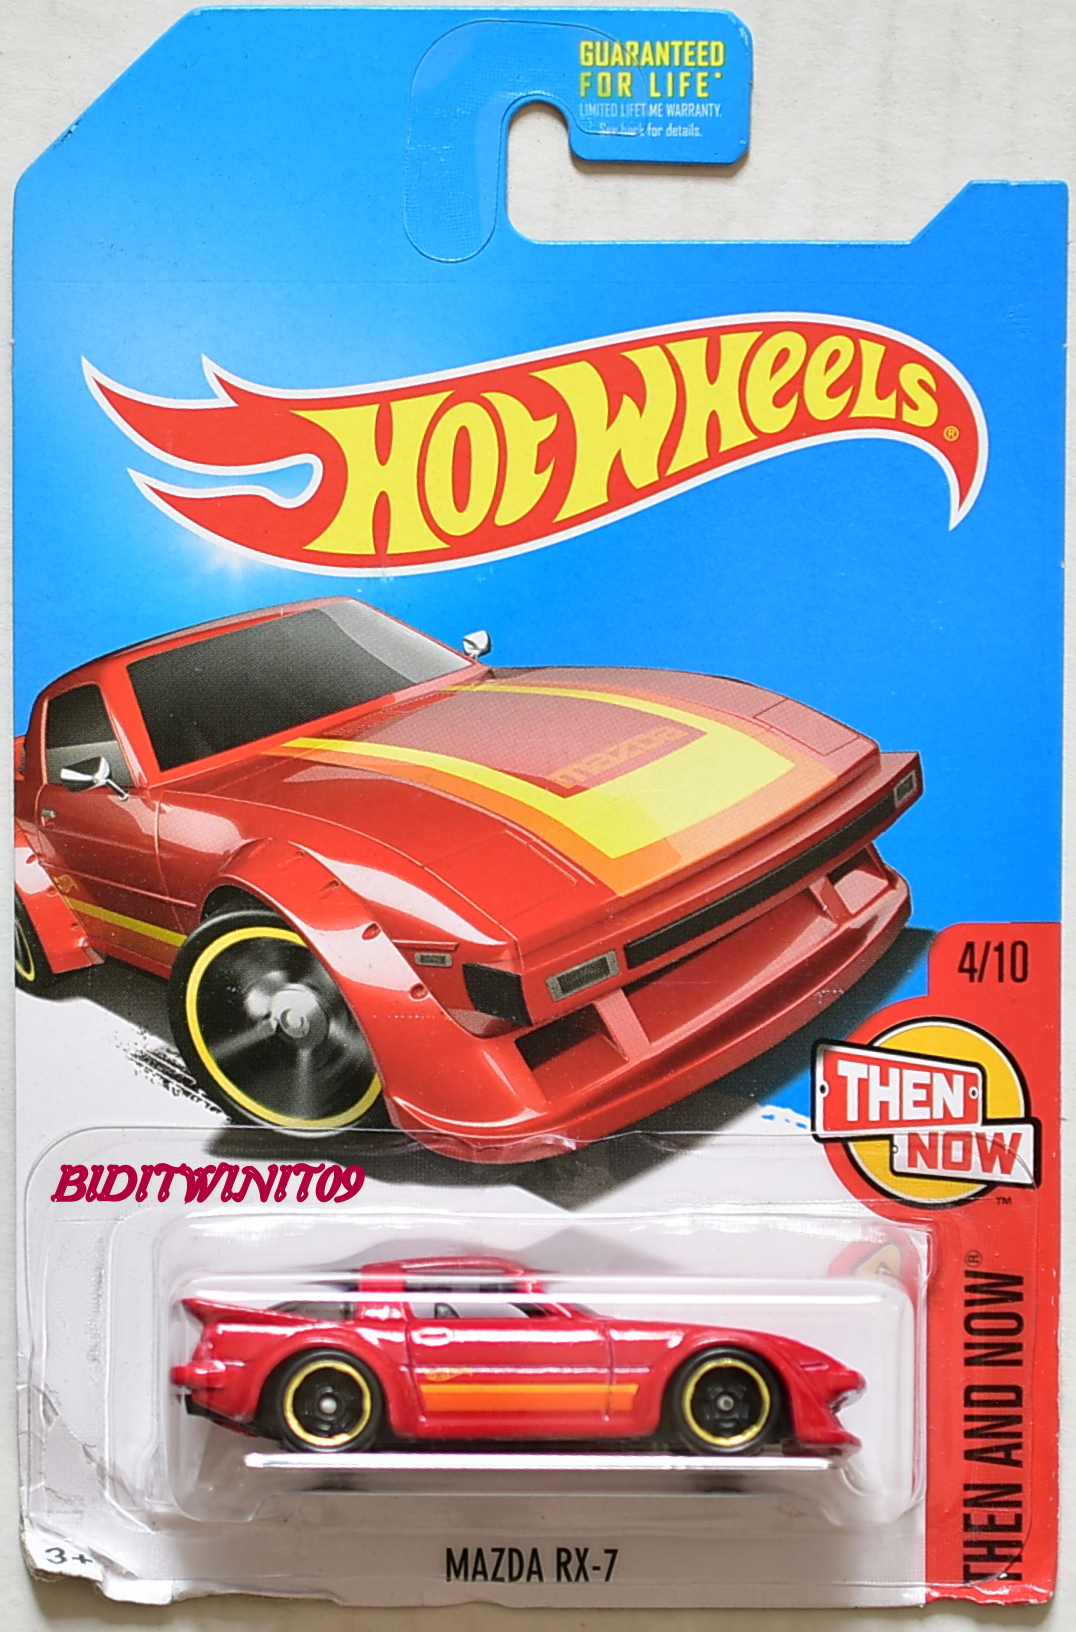 HOT WHEELS 2017 THEN AND NOW MAZDA RX-7 #4/10 KMART RED BAR CARD